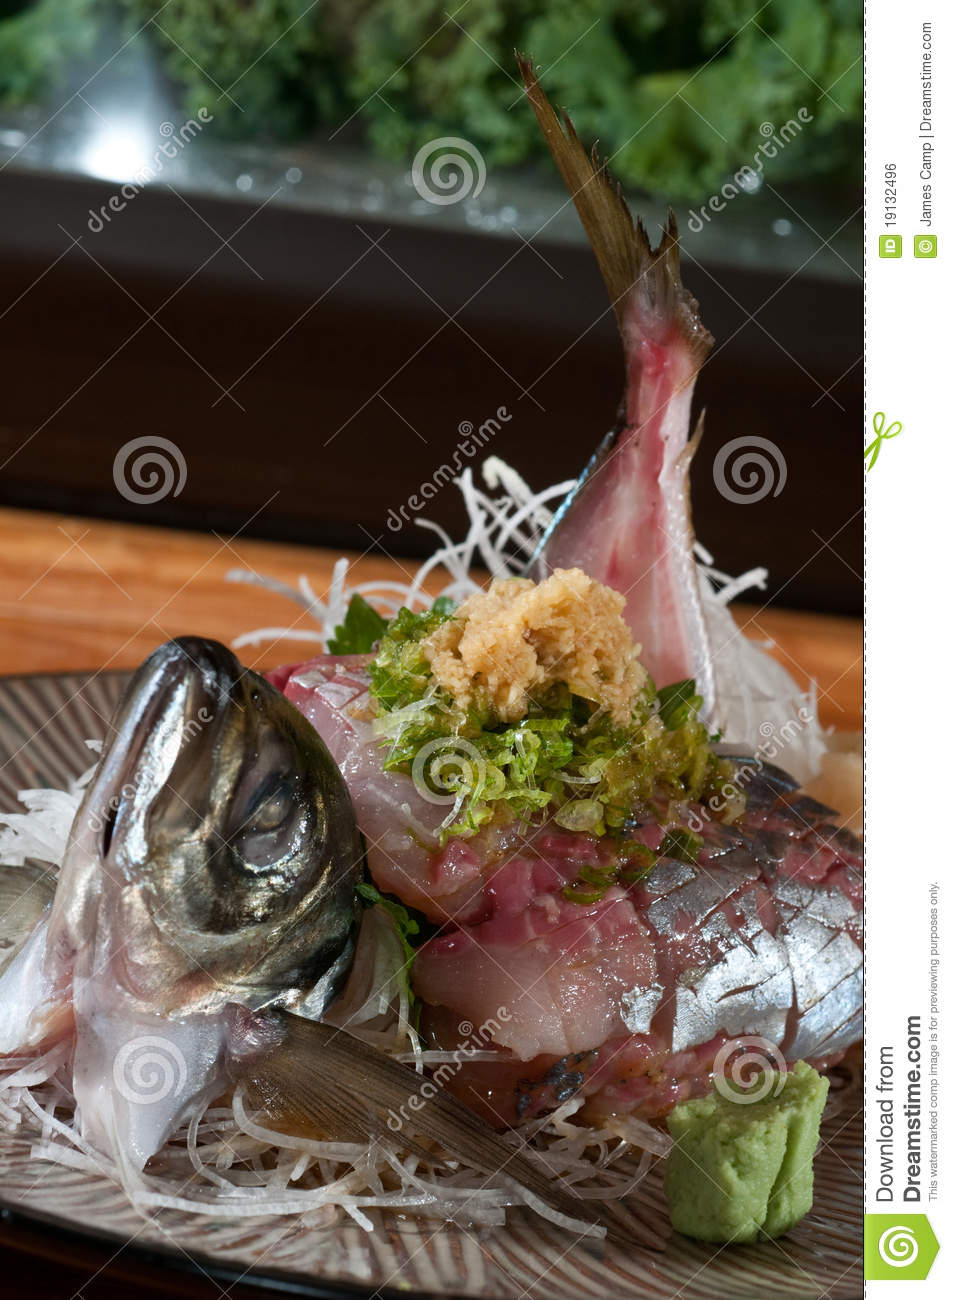 Fish cut for sushi royalty free stock image image 19132496 for Best fish for sushi